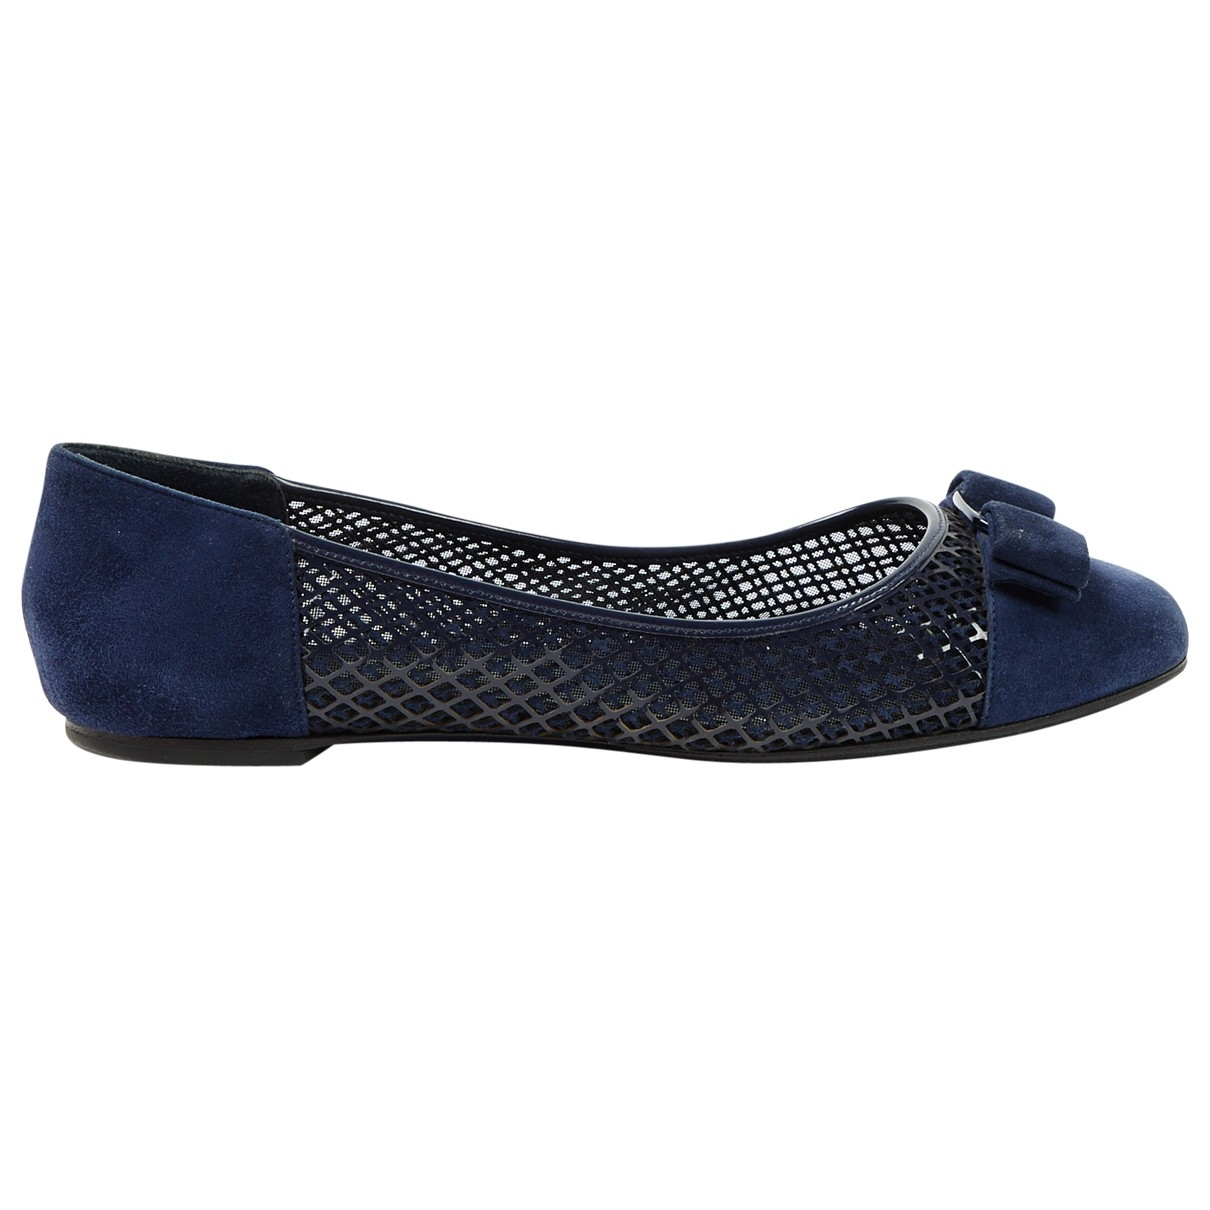 Salvatore Ferragamo \N Navy Suede Ballet flats for Women 9.5 US